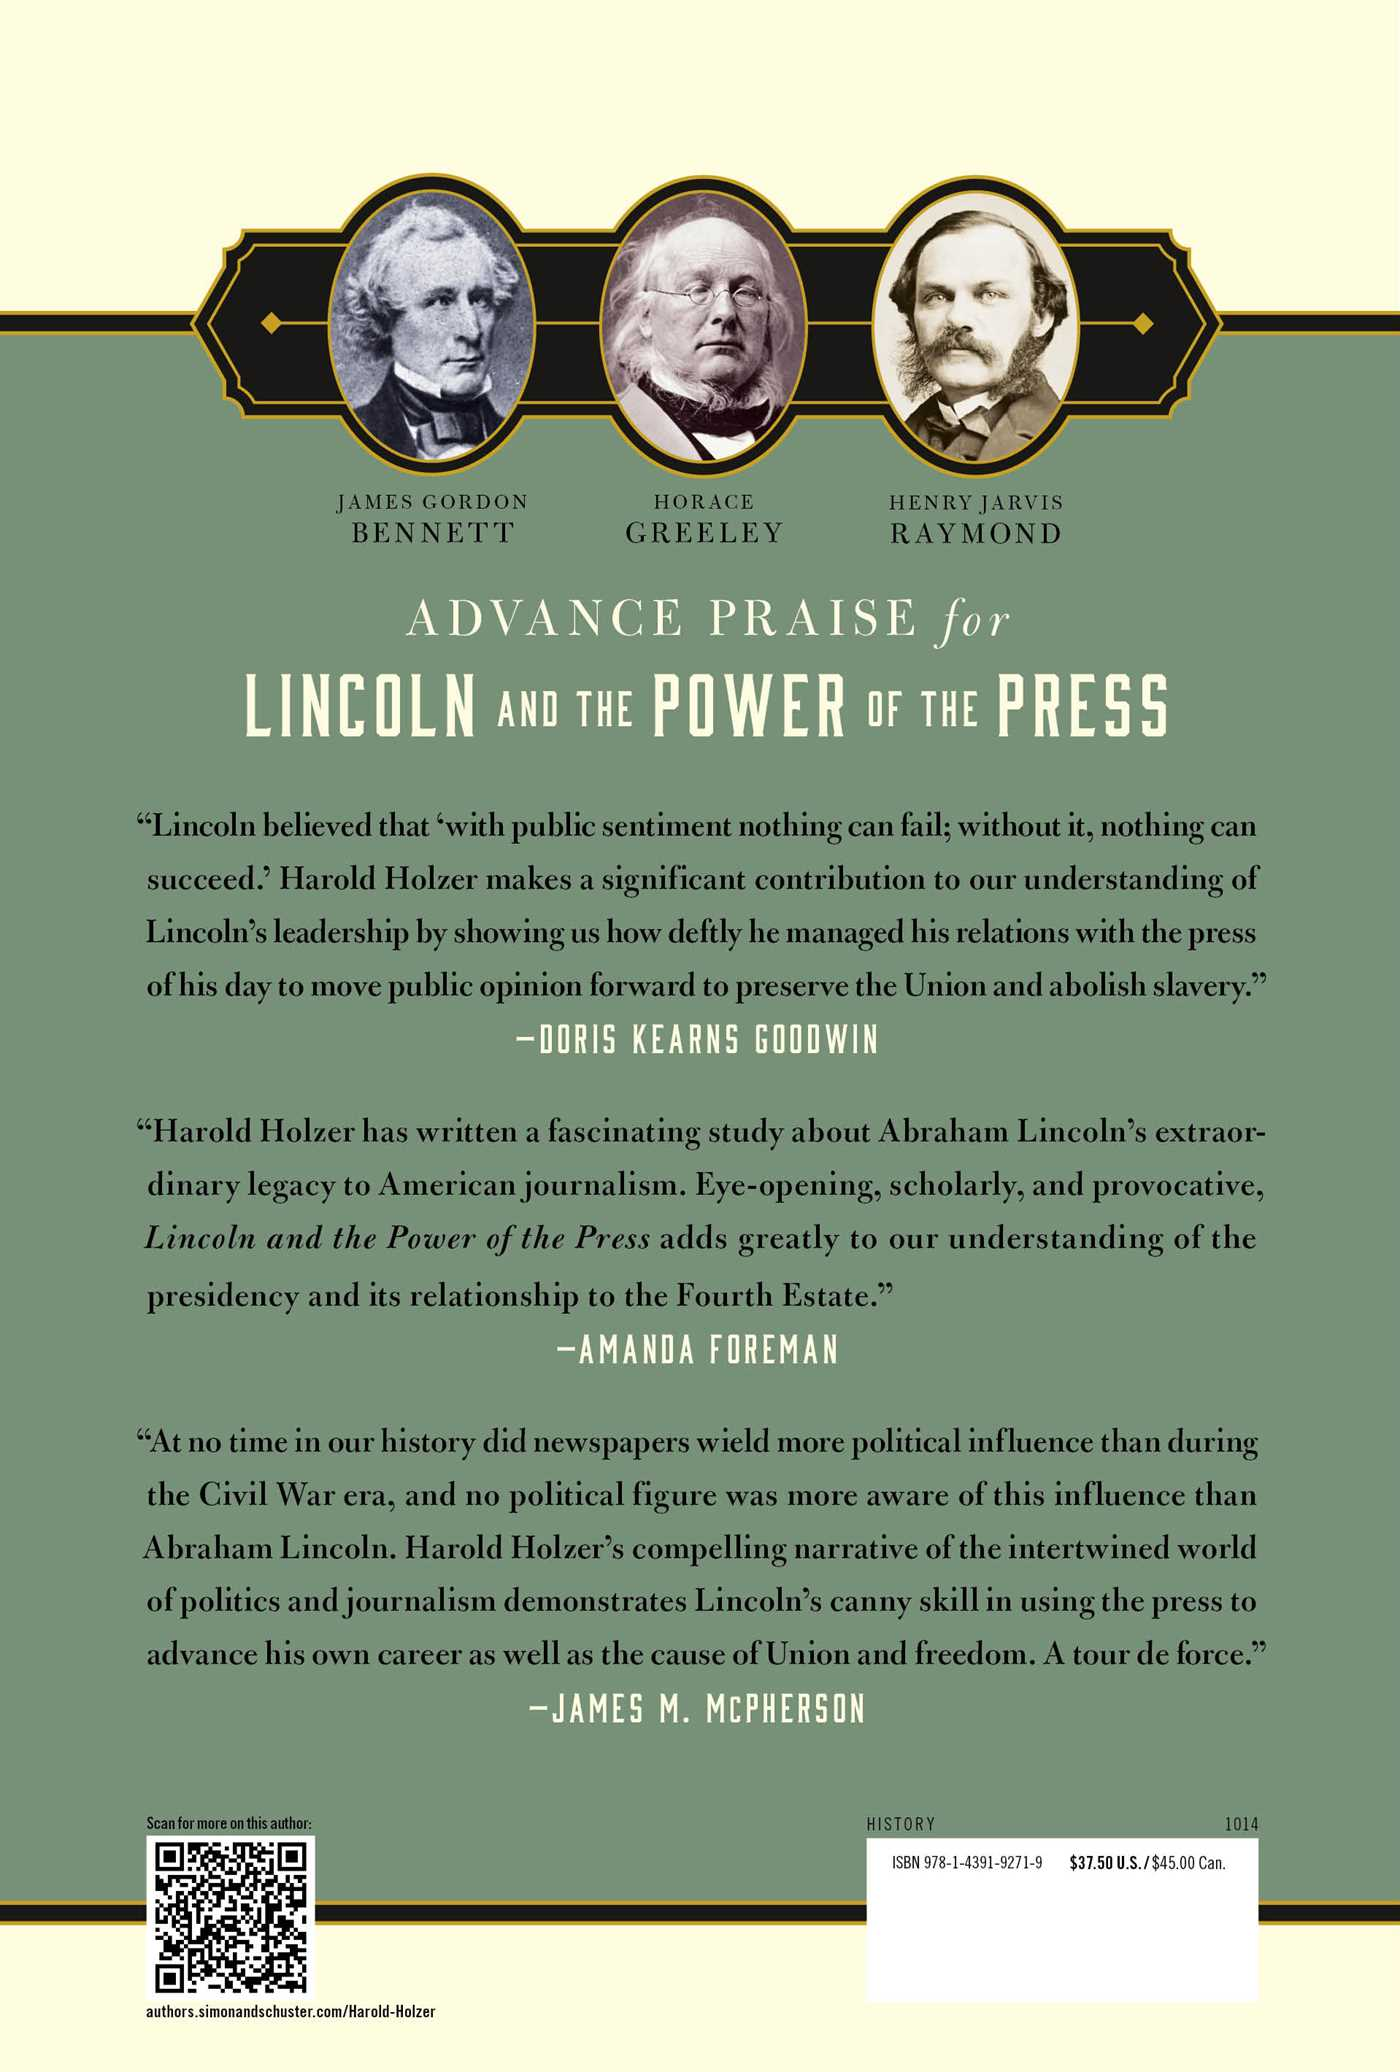 Lincoln-and-the-power-of-the-press-9781439192719_hr-back